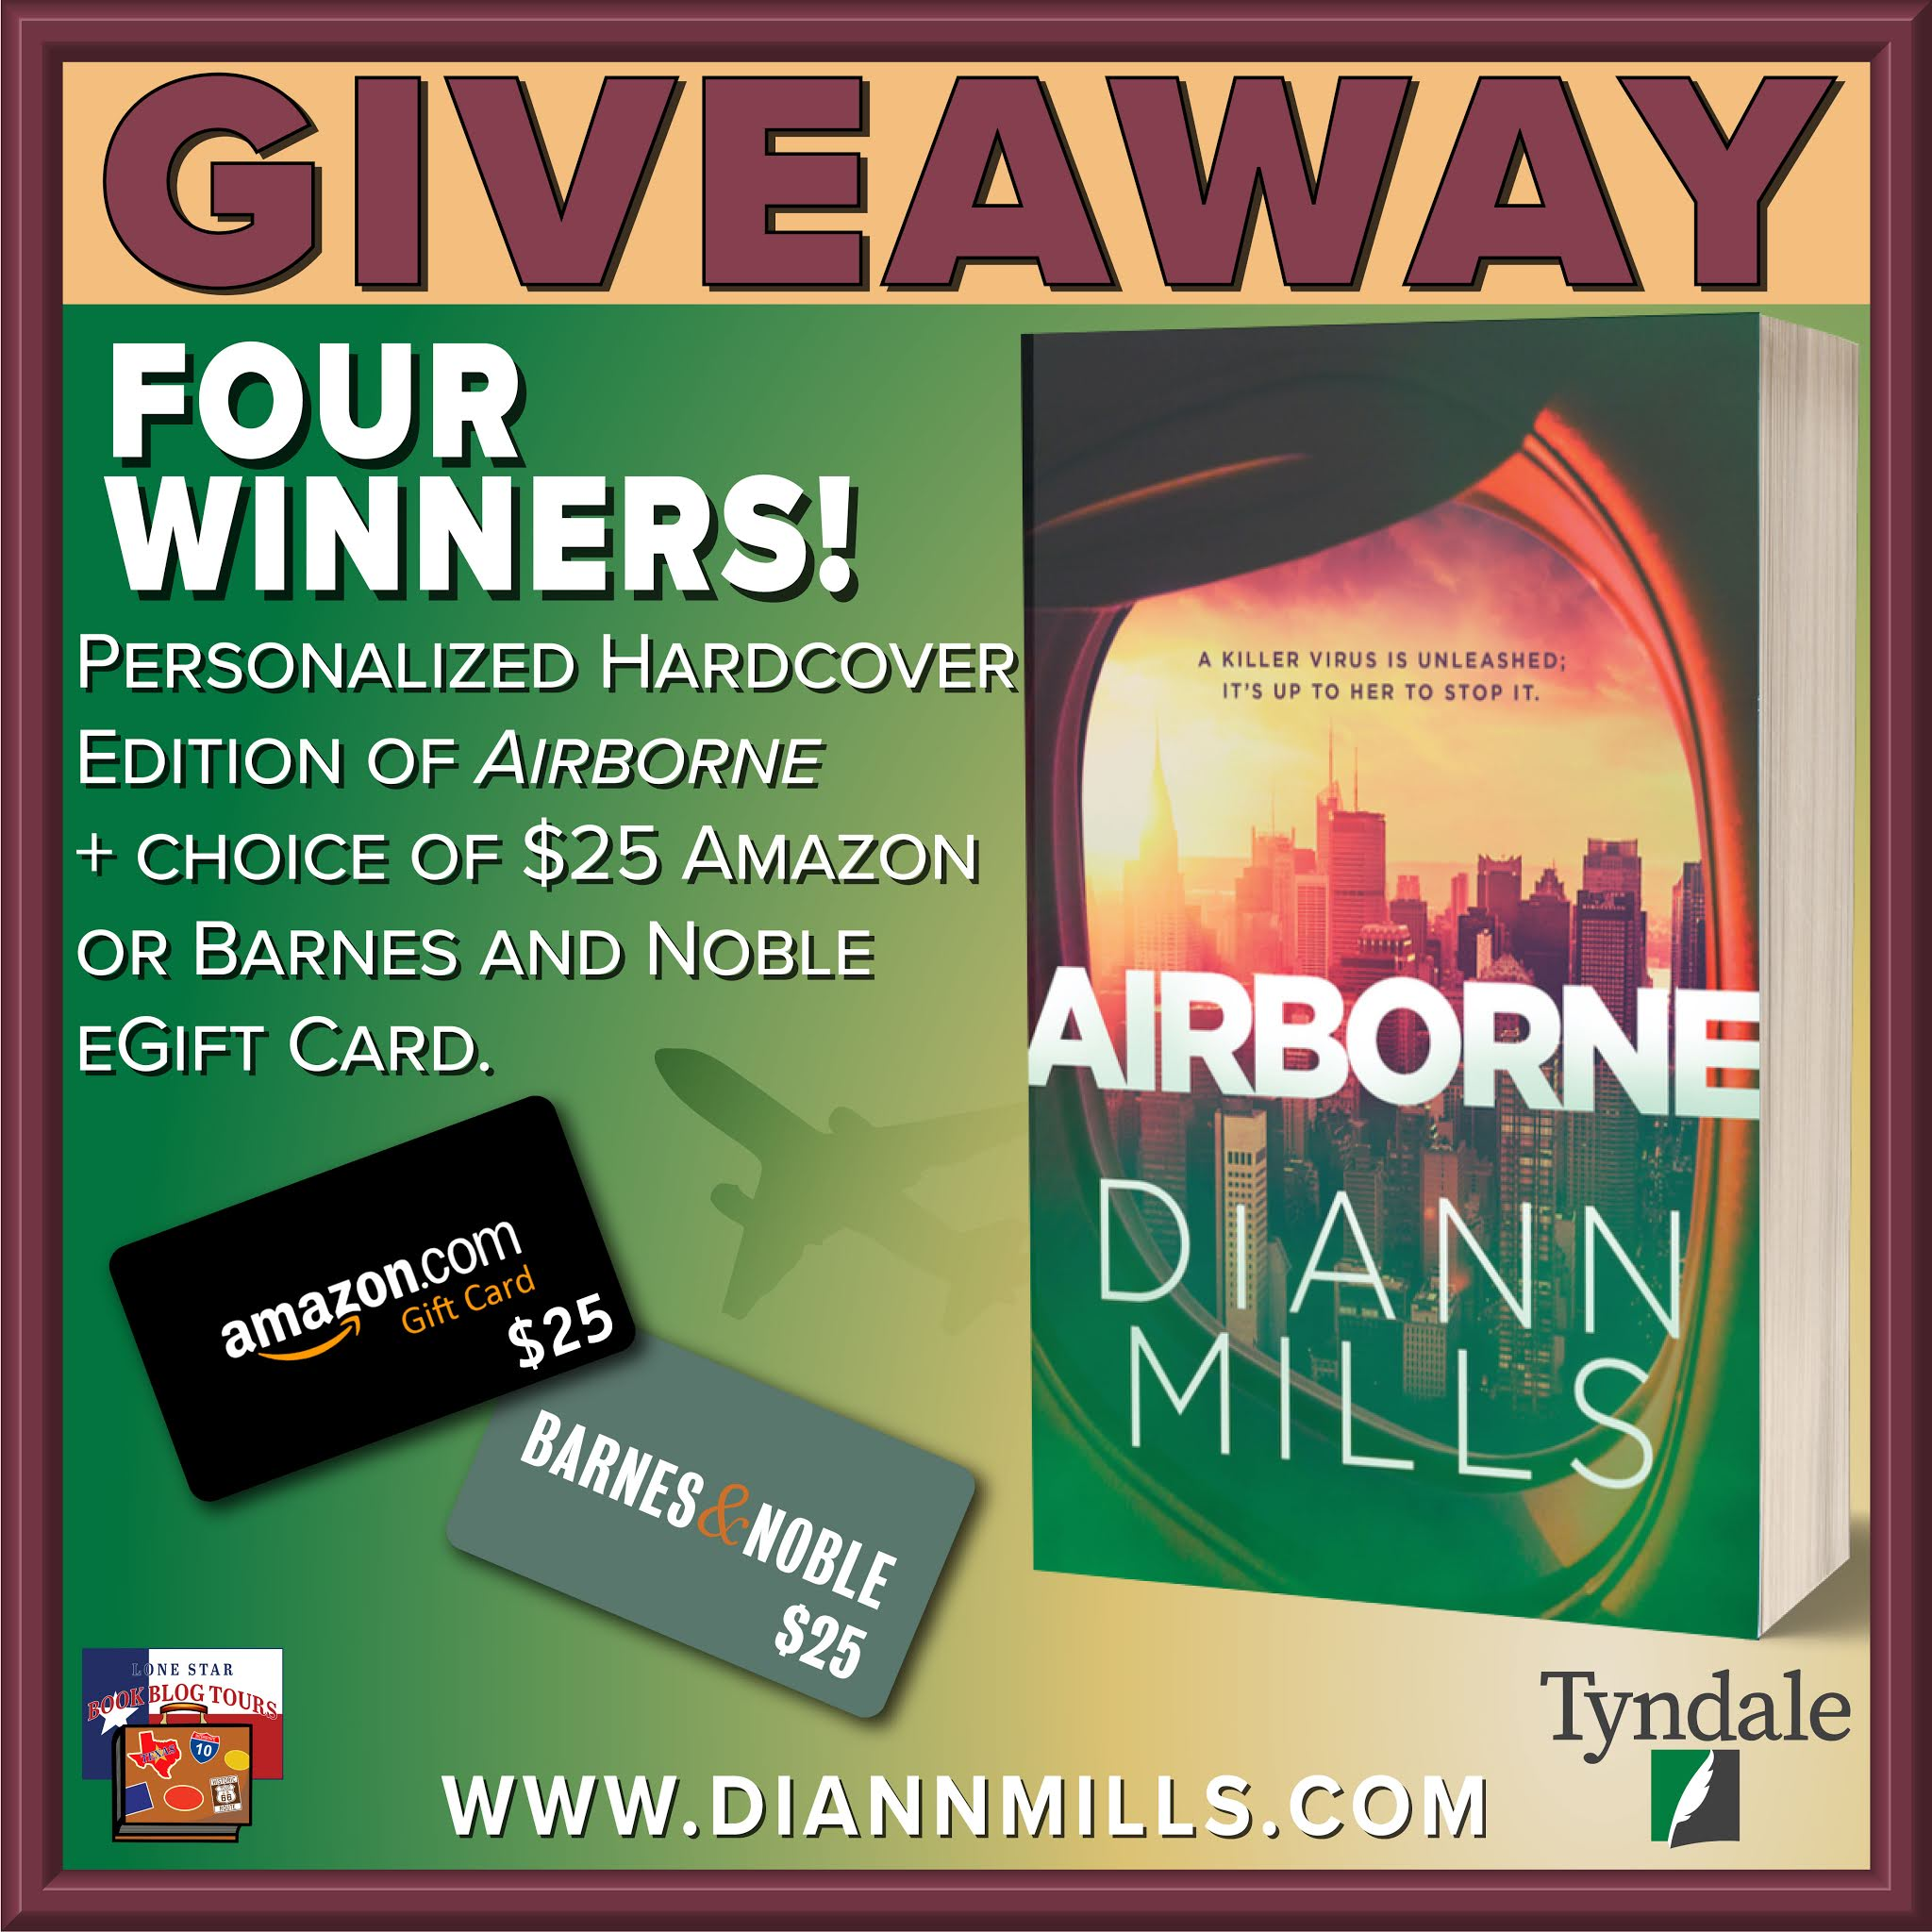 Airborne tour giveaway graphic. Prizes to be awarded precede this image in the post text.